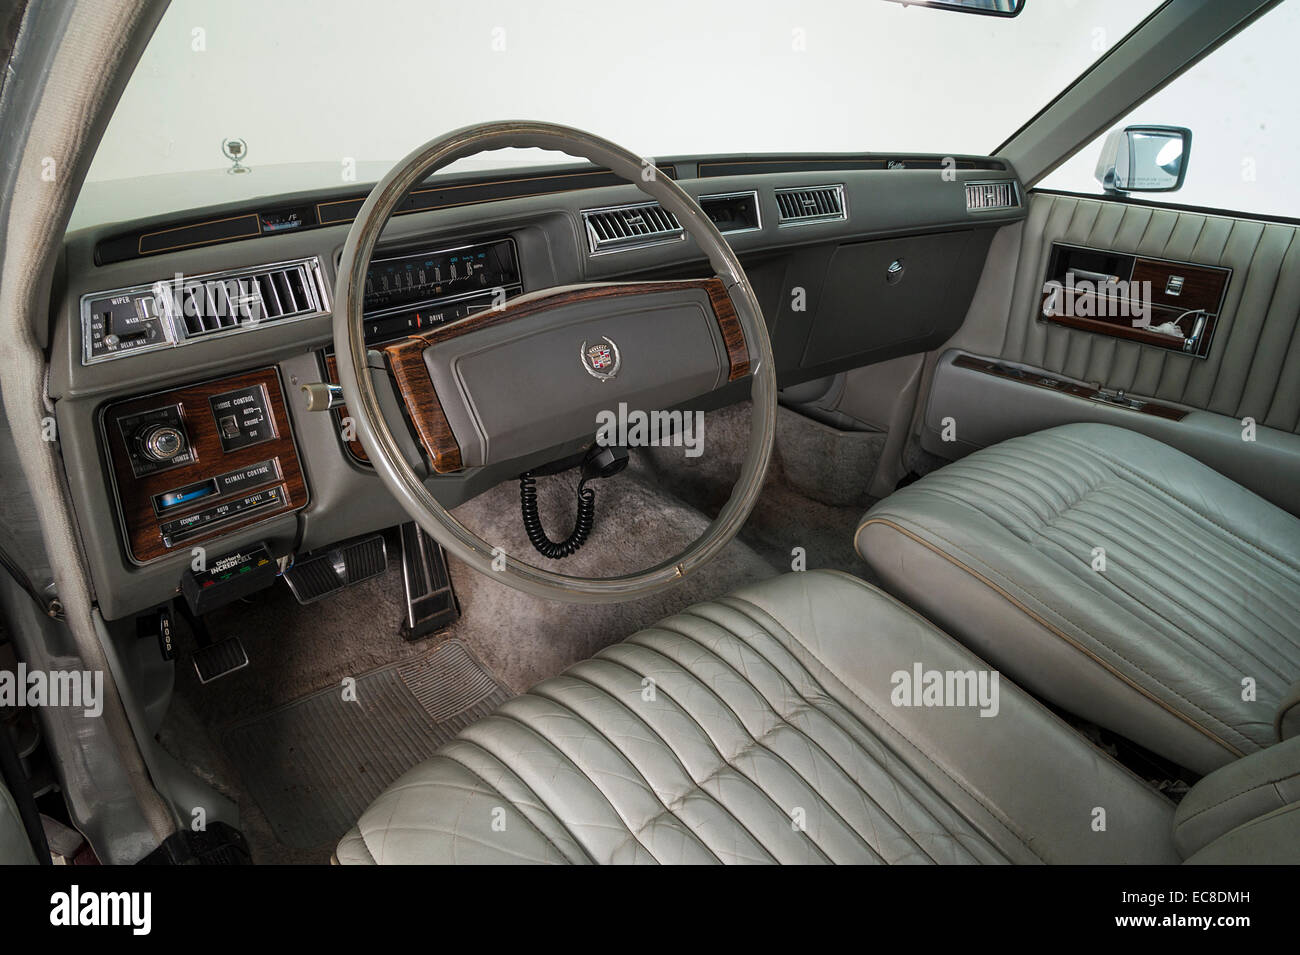 1976 Cadillac Seville Owned By Elvis Presley Stock Photo 76403729